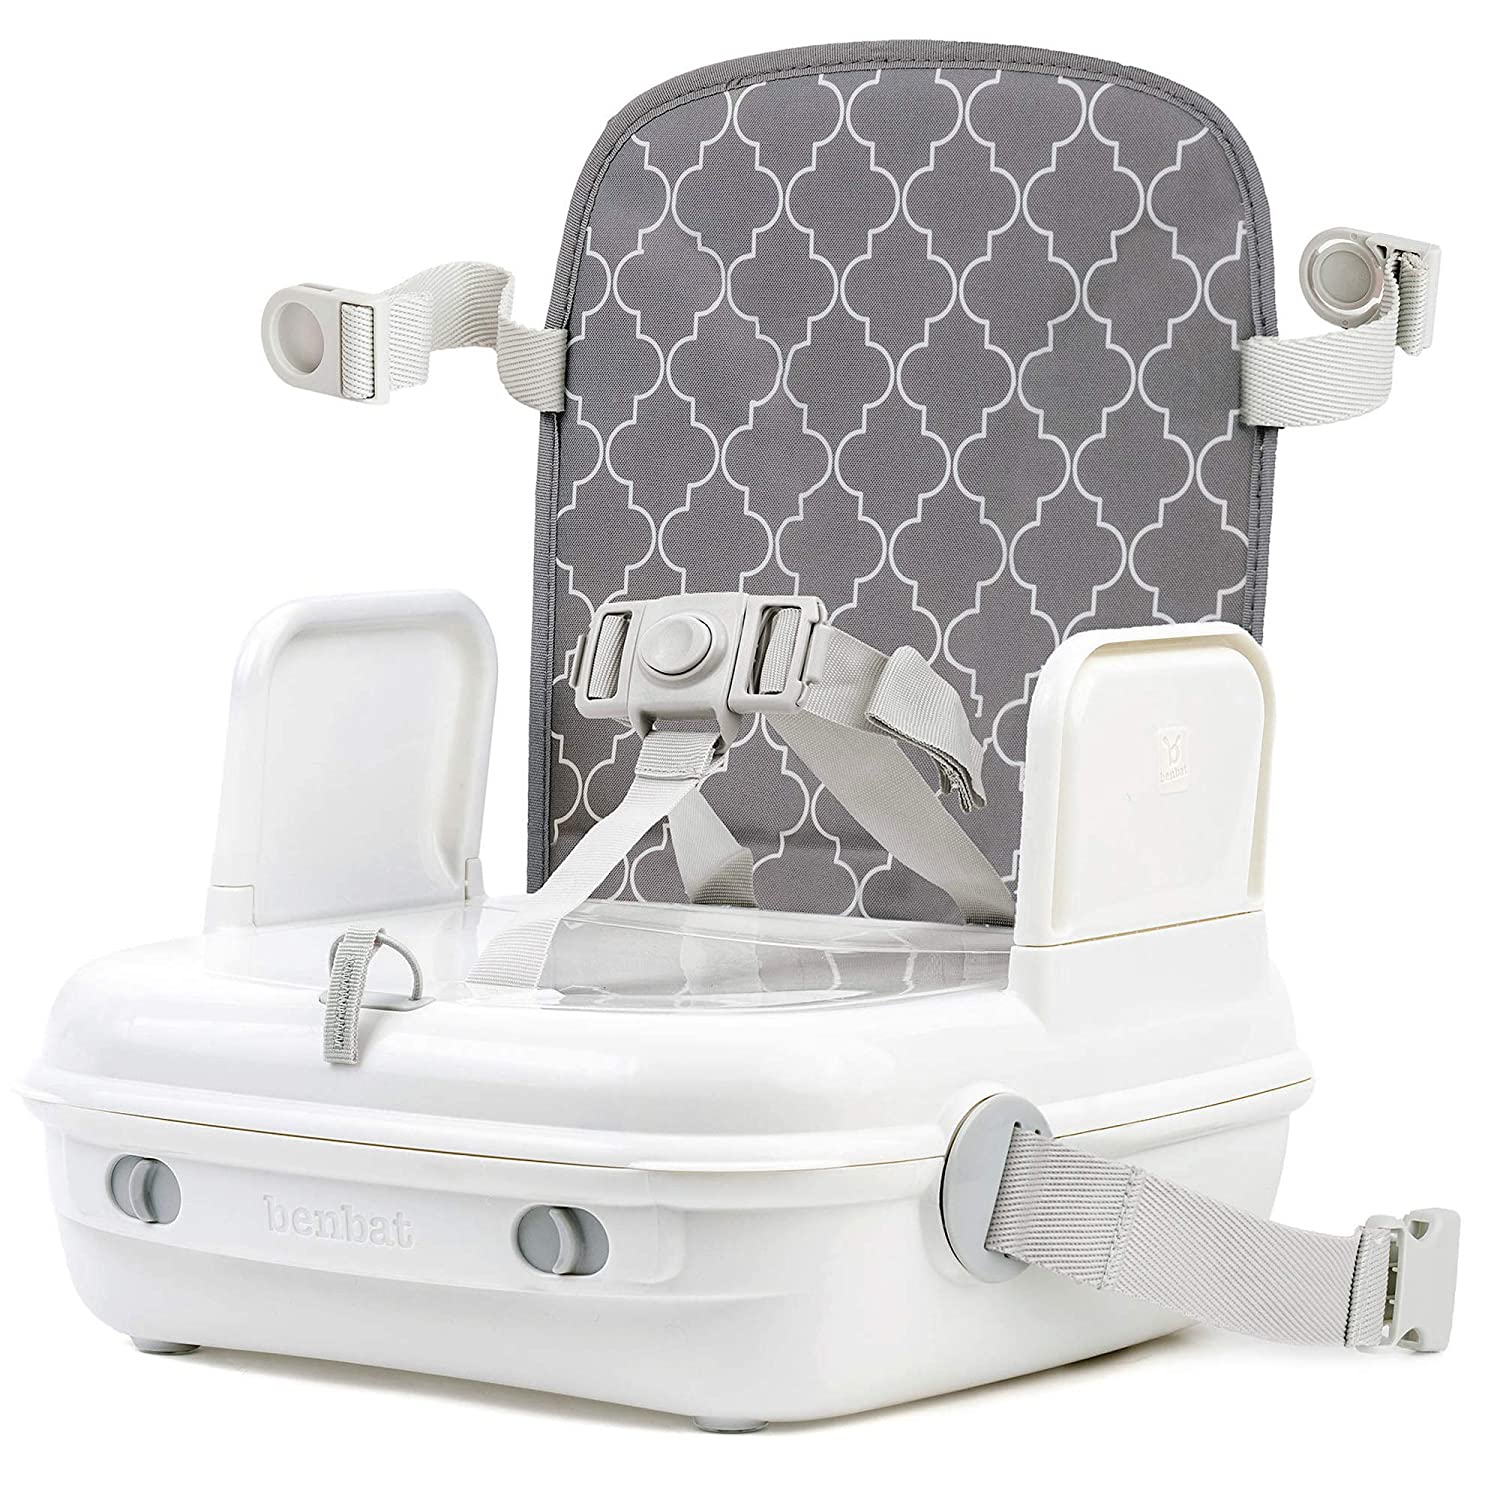 New Baby Booster Seat Dedication for Dining Table by Portable Industry No. 1 Benbat. Wash